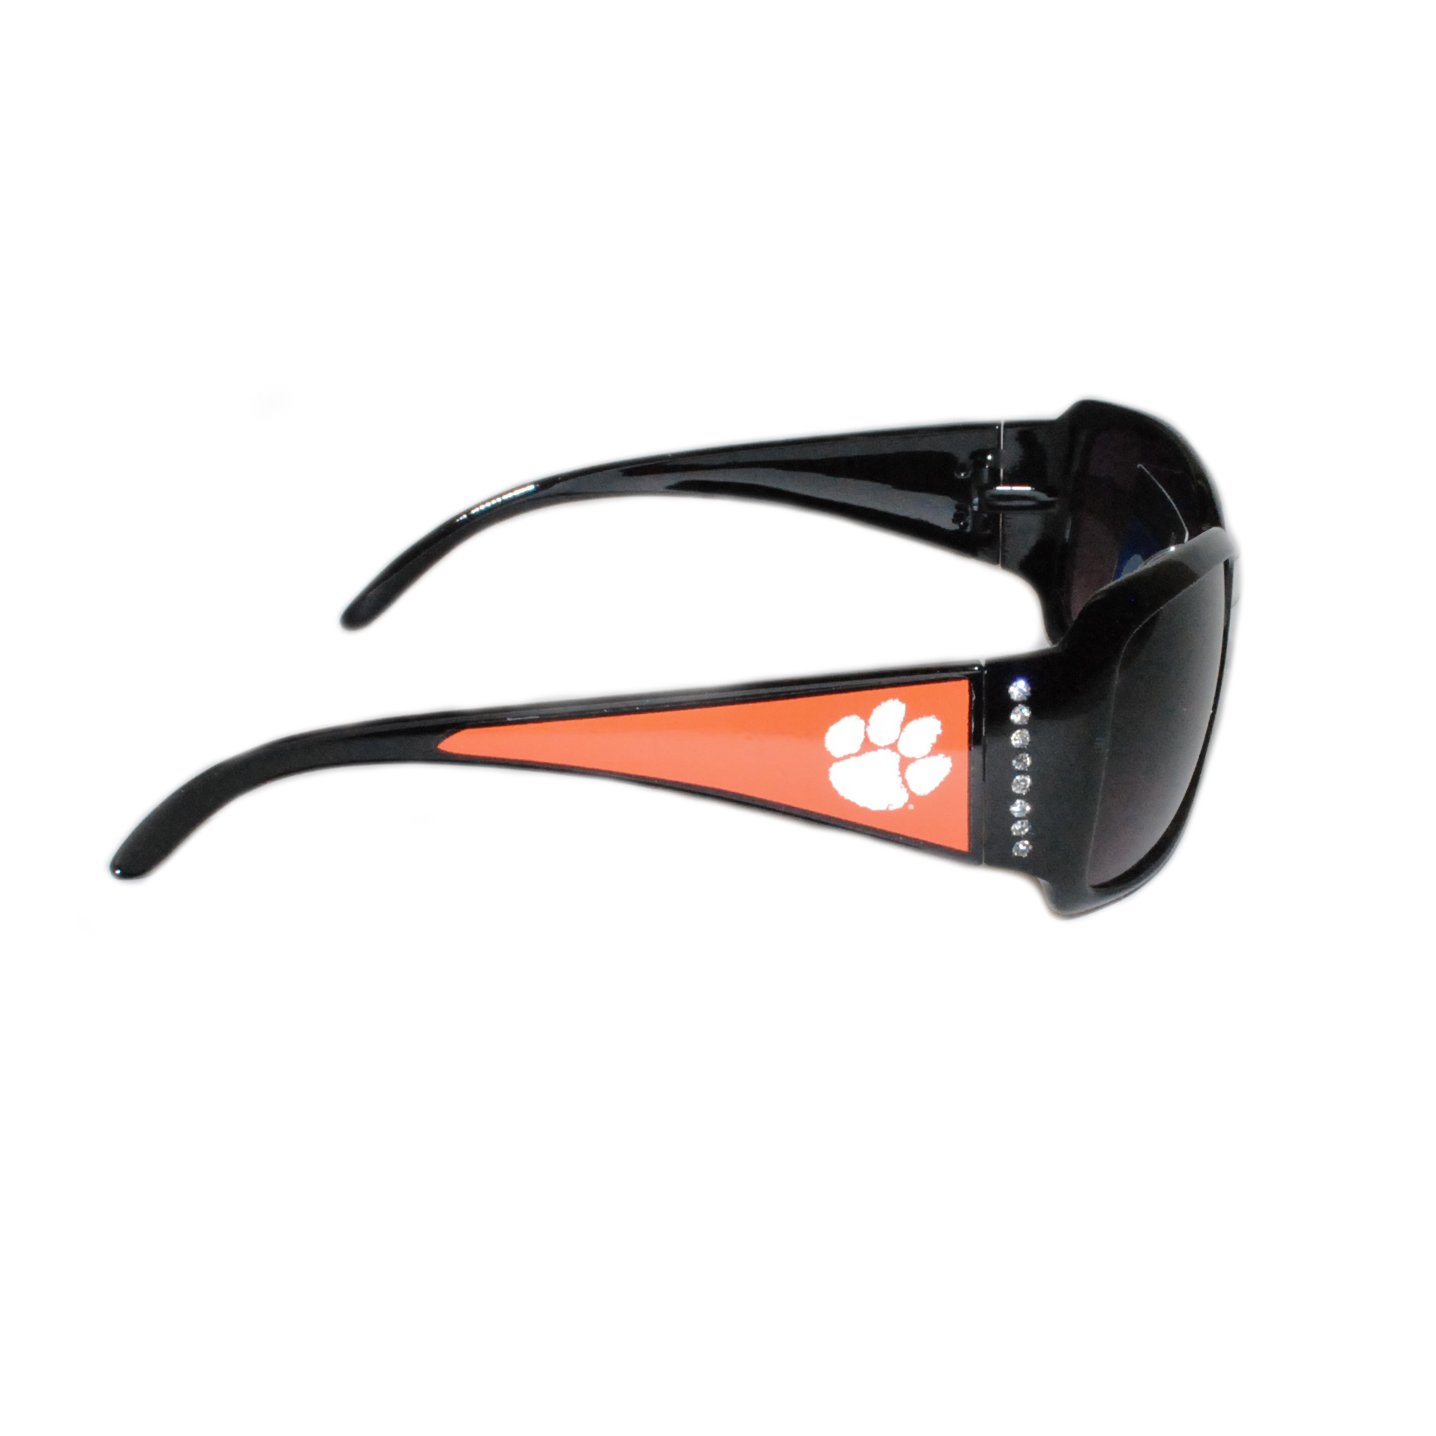 Clemson Tigers Black Sunglasses with Logo and Crystal Clear Rhinestones for Ladies